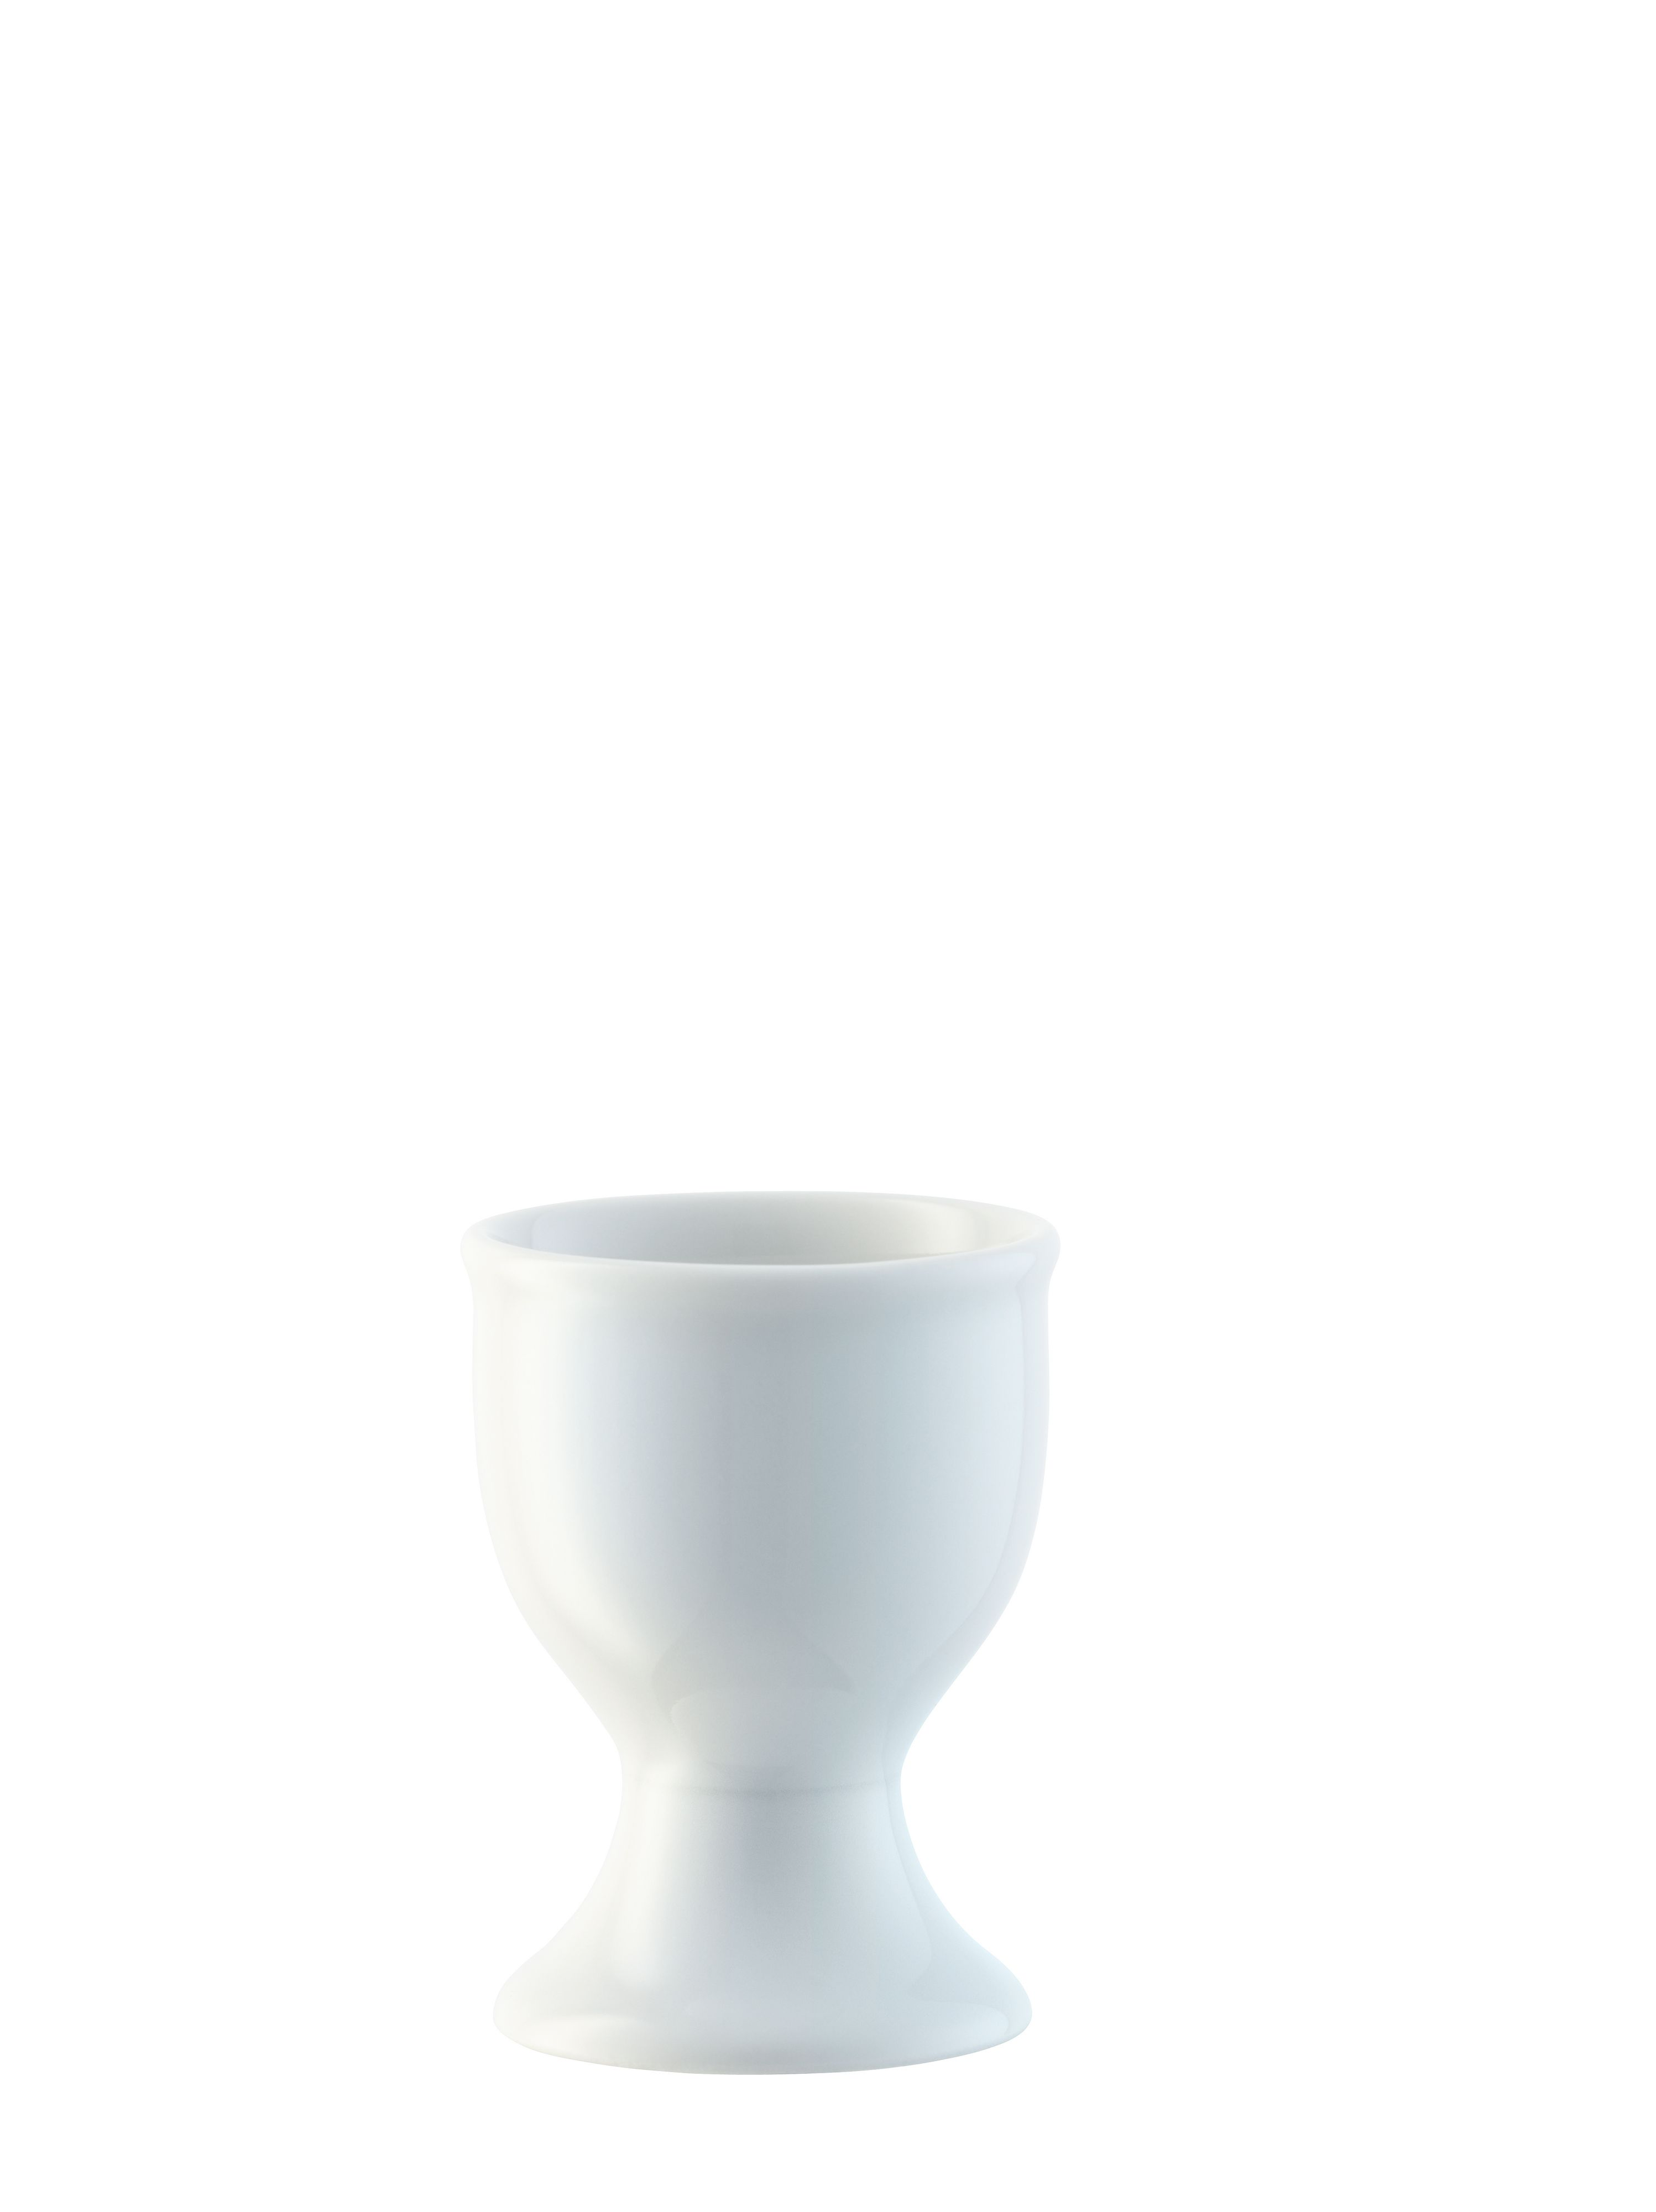 Dine Egg Cup, set of four